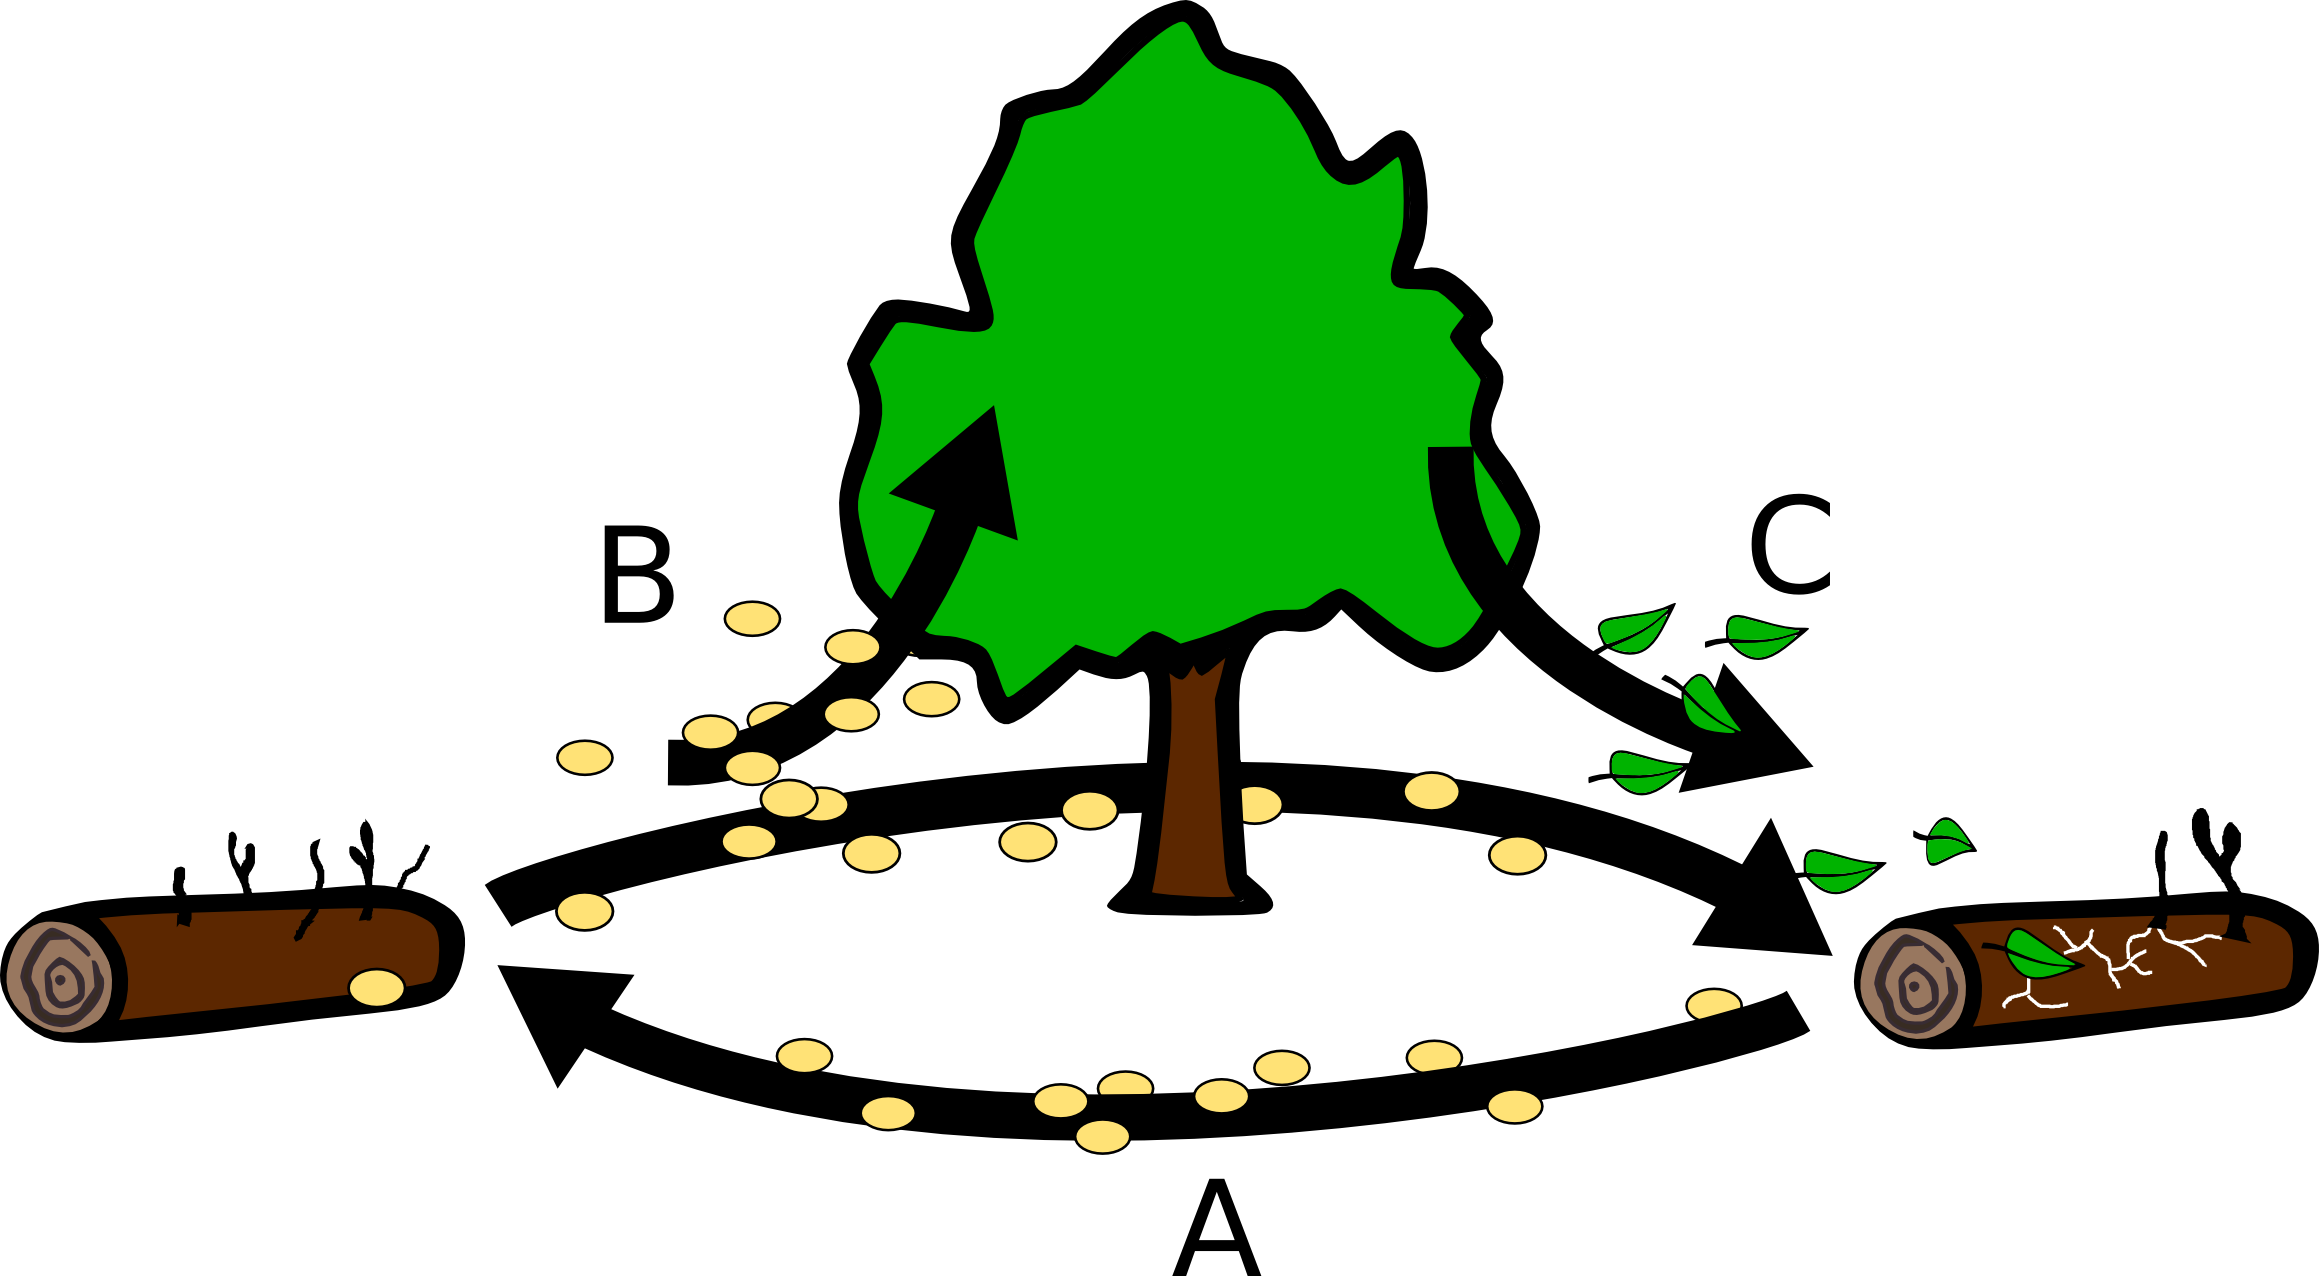 Final project dan s. Clipart forest tropical evergreen forest